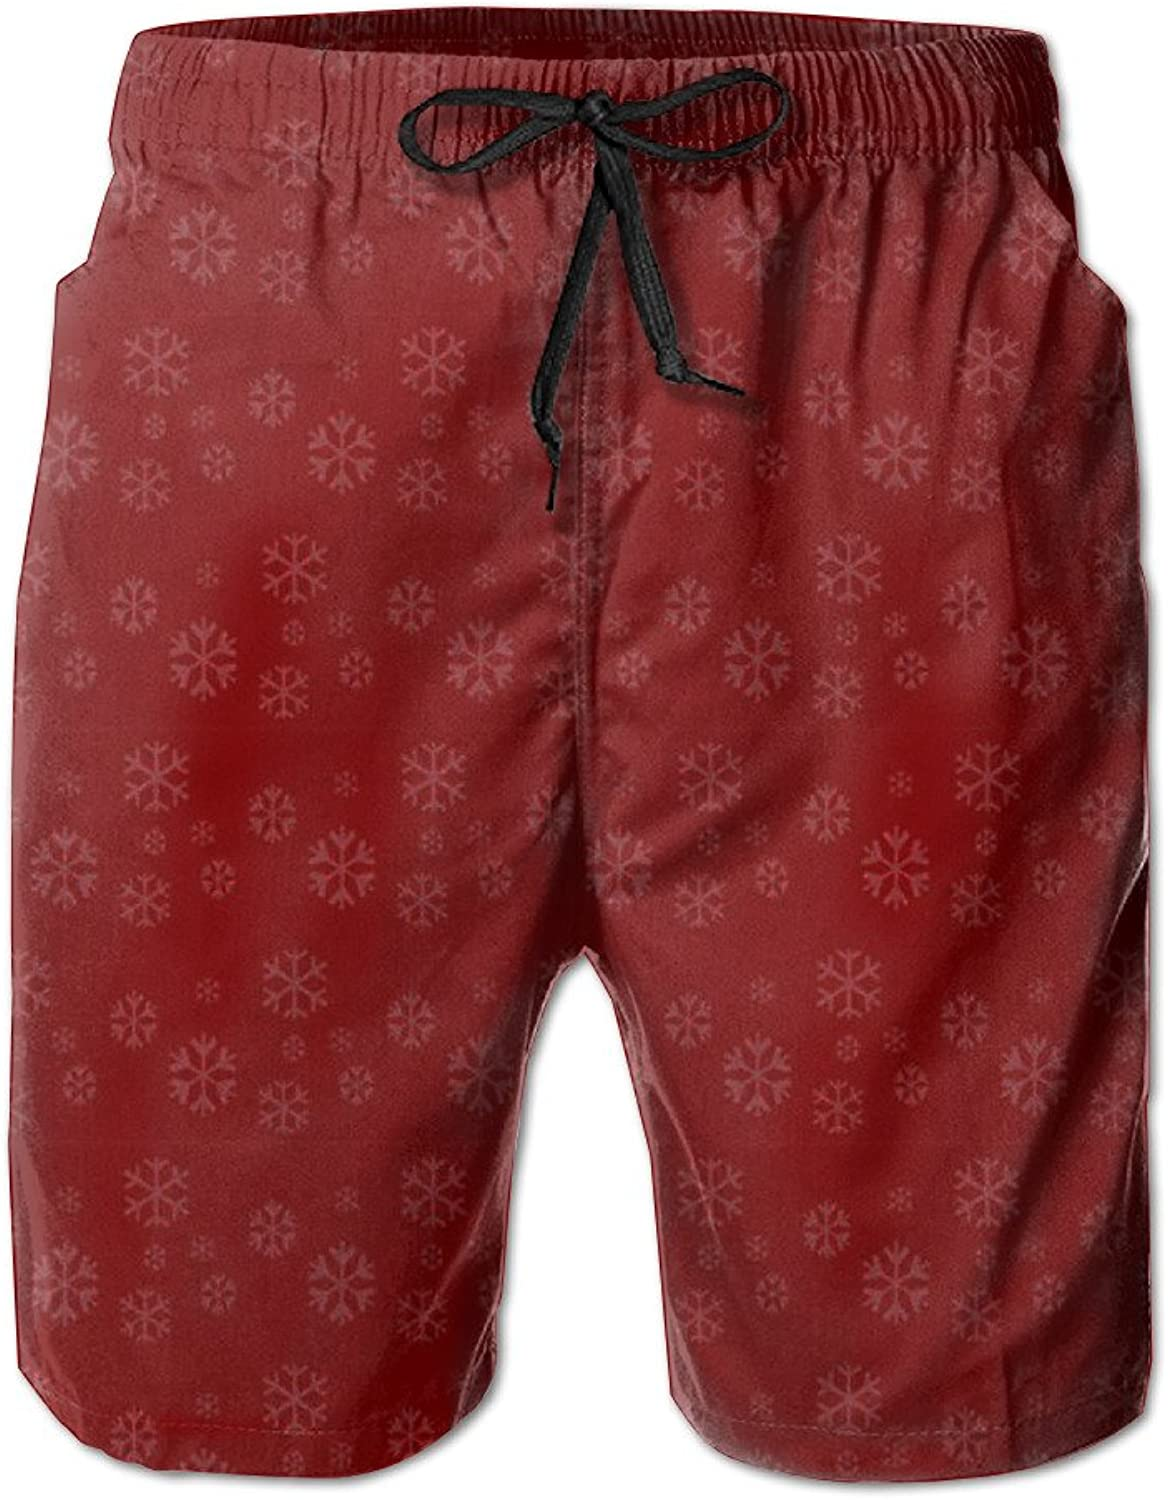 0478cc9d61 Bxse Red Flower Pattern Quick Dry Men's Shorts Summer Summer Summer Beach  Printing Pants Hot Swimming Trousers Board Shorts With Pockets 470ad2